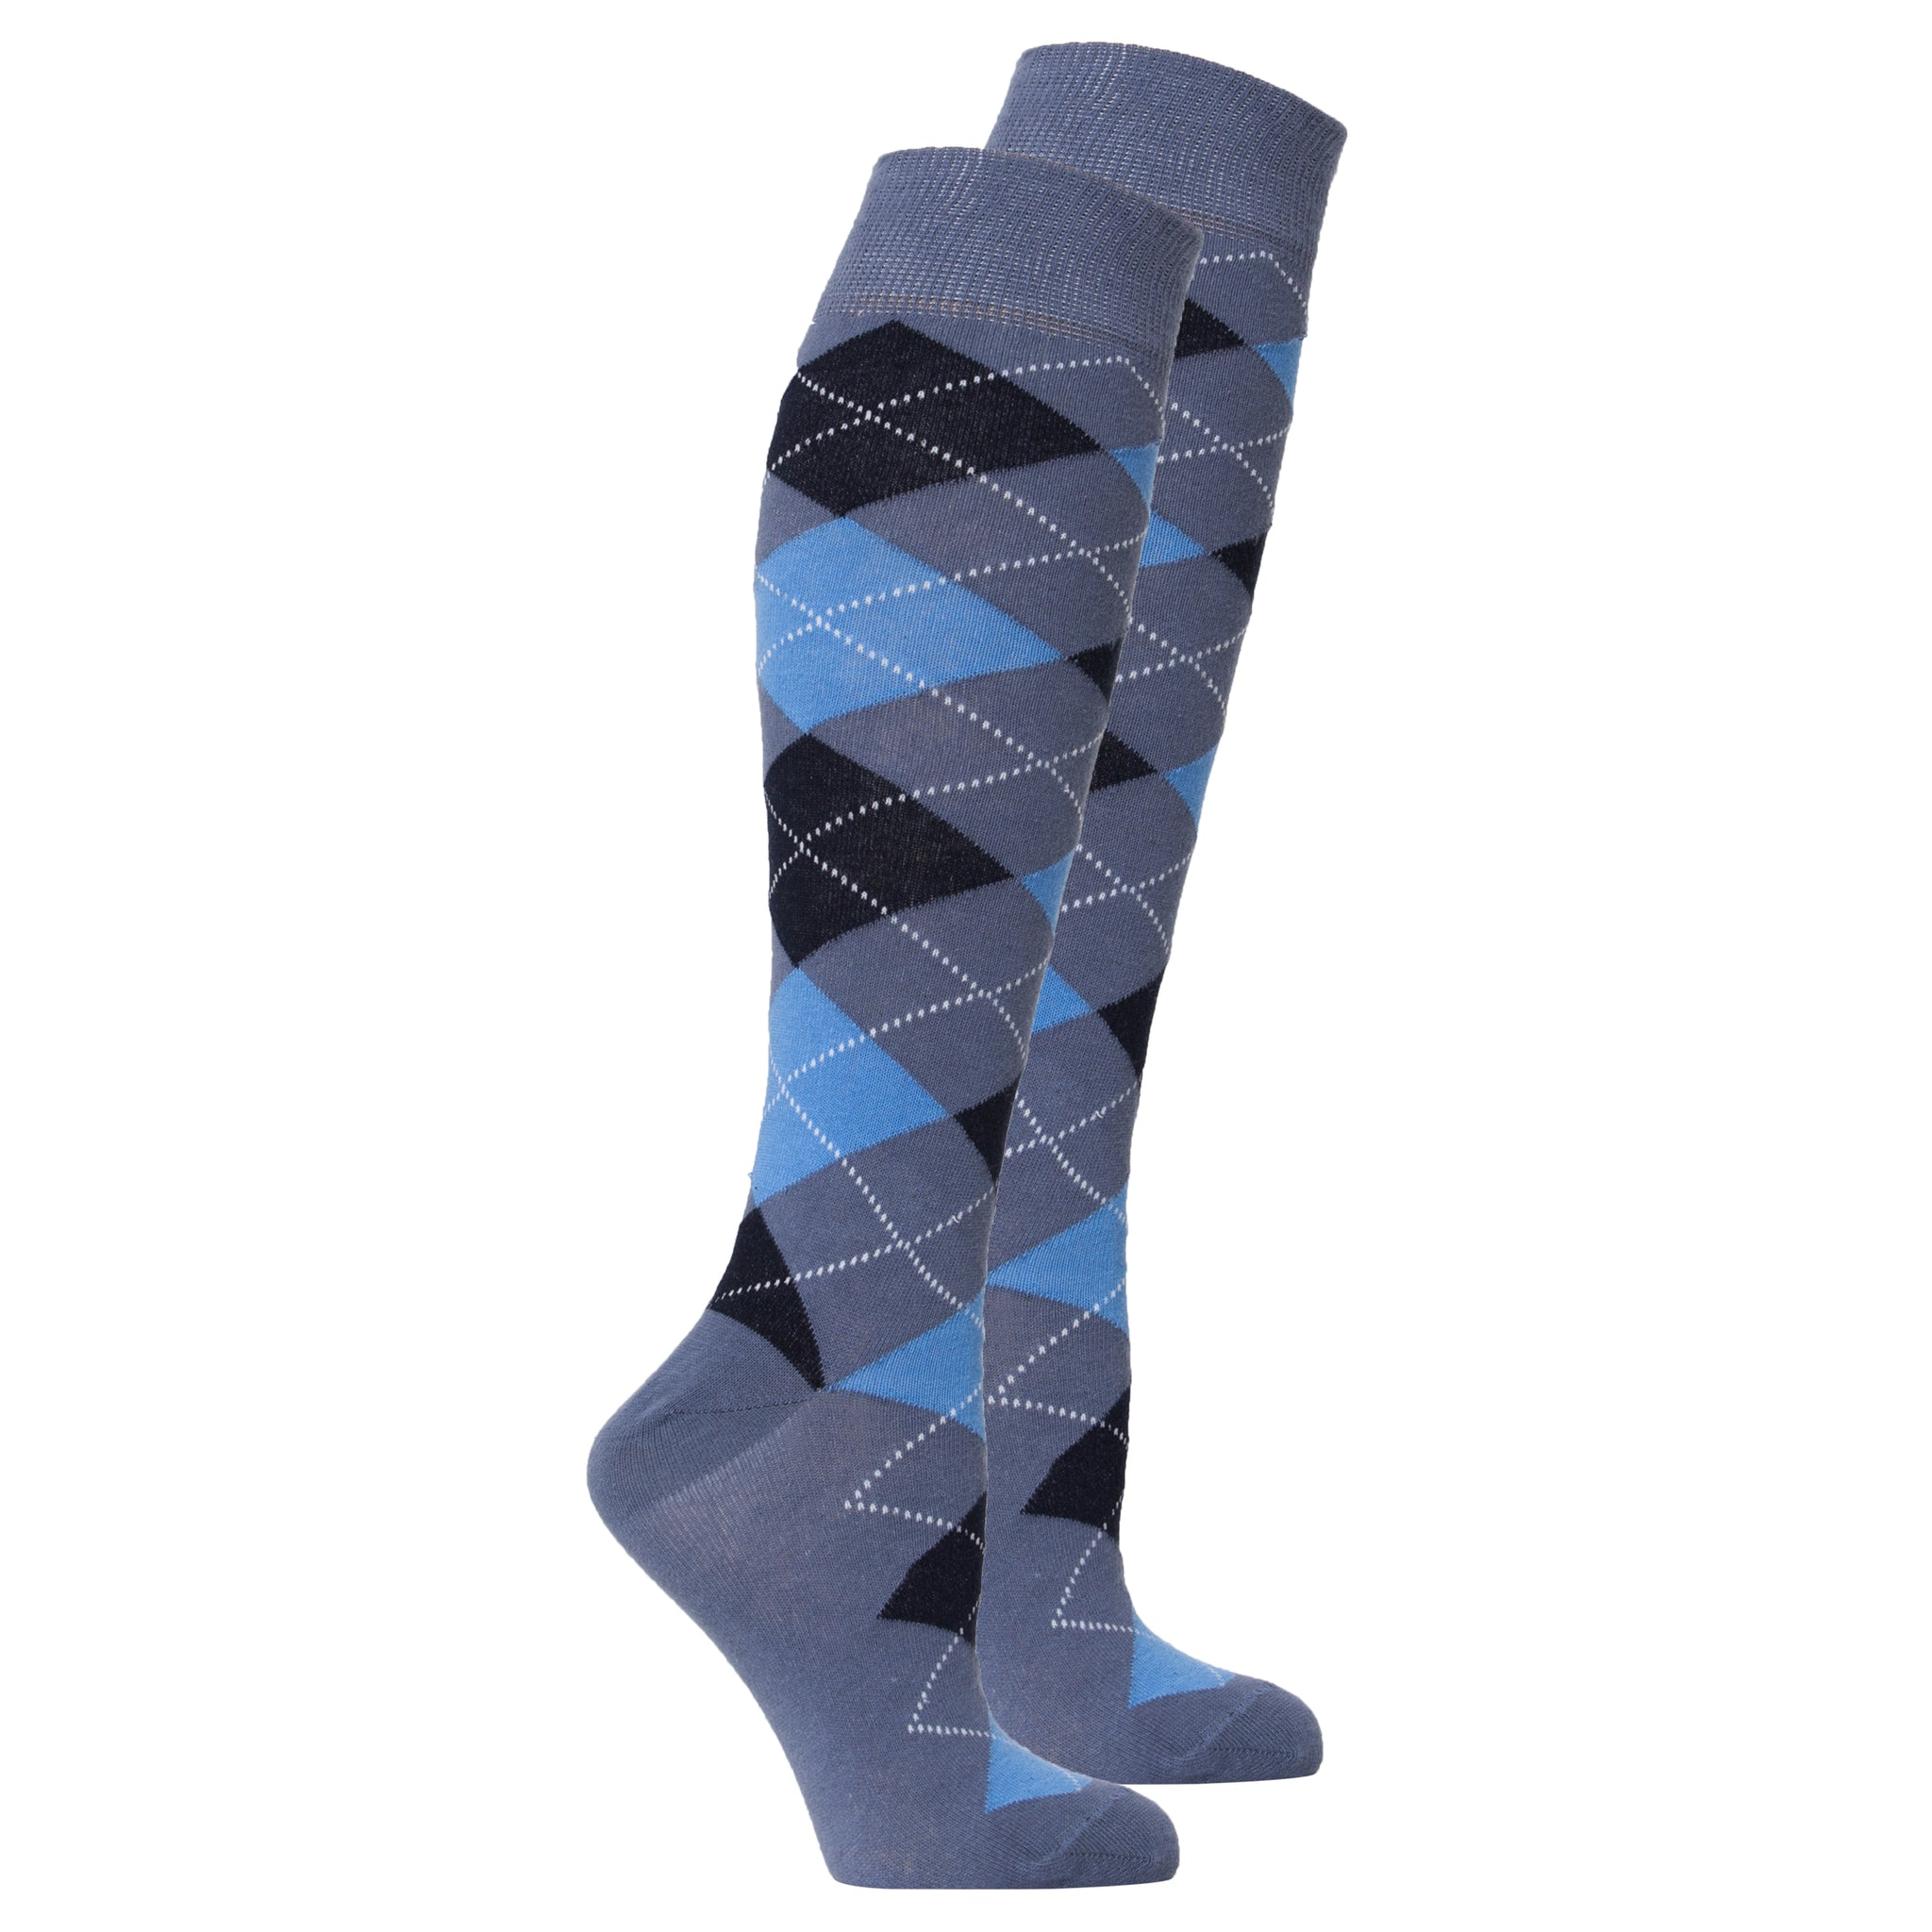 Women's Palace Blue Argyle Knee High Socks